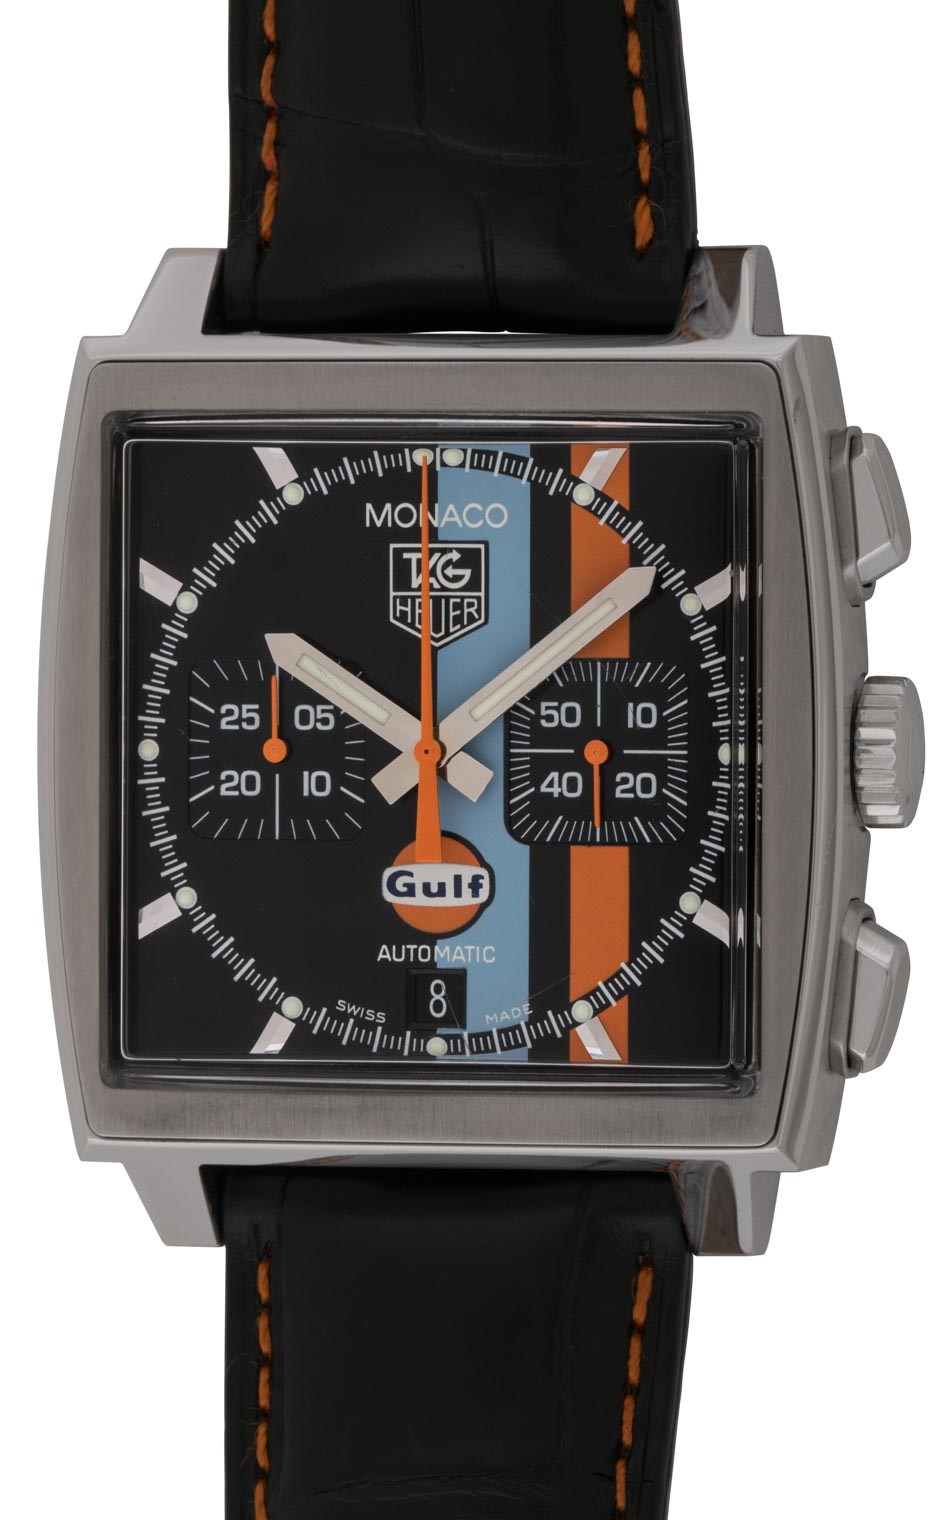 Limited Edition Birthday Collection: Monaco Chronograph 'Gulf' Limited Edition